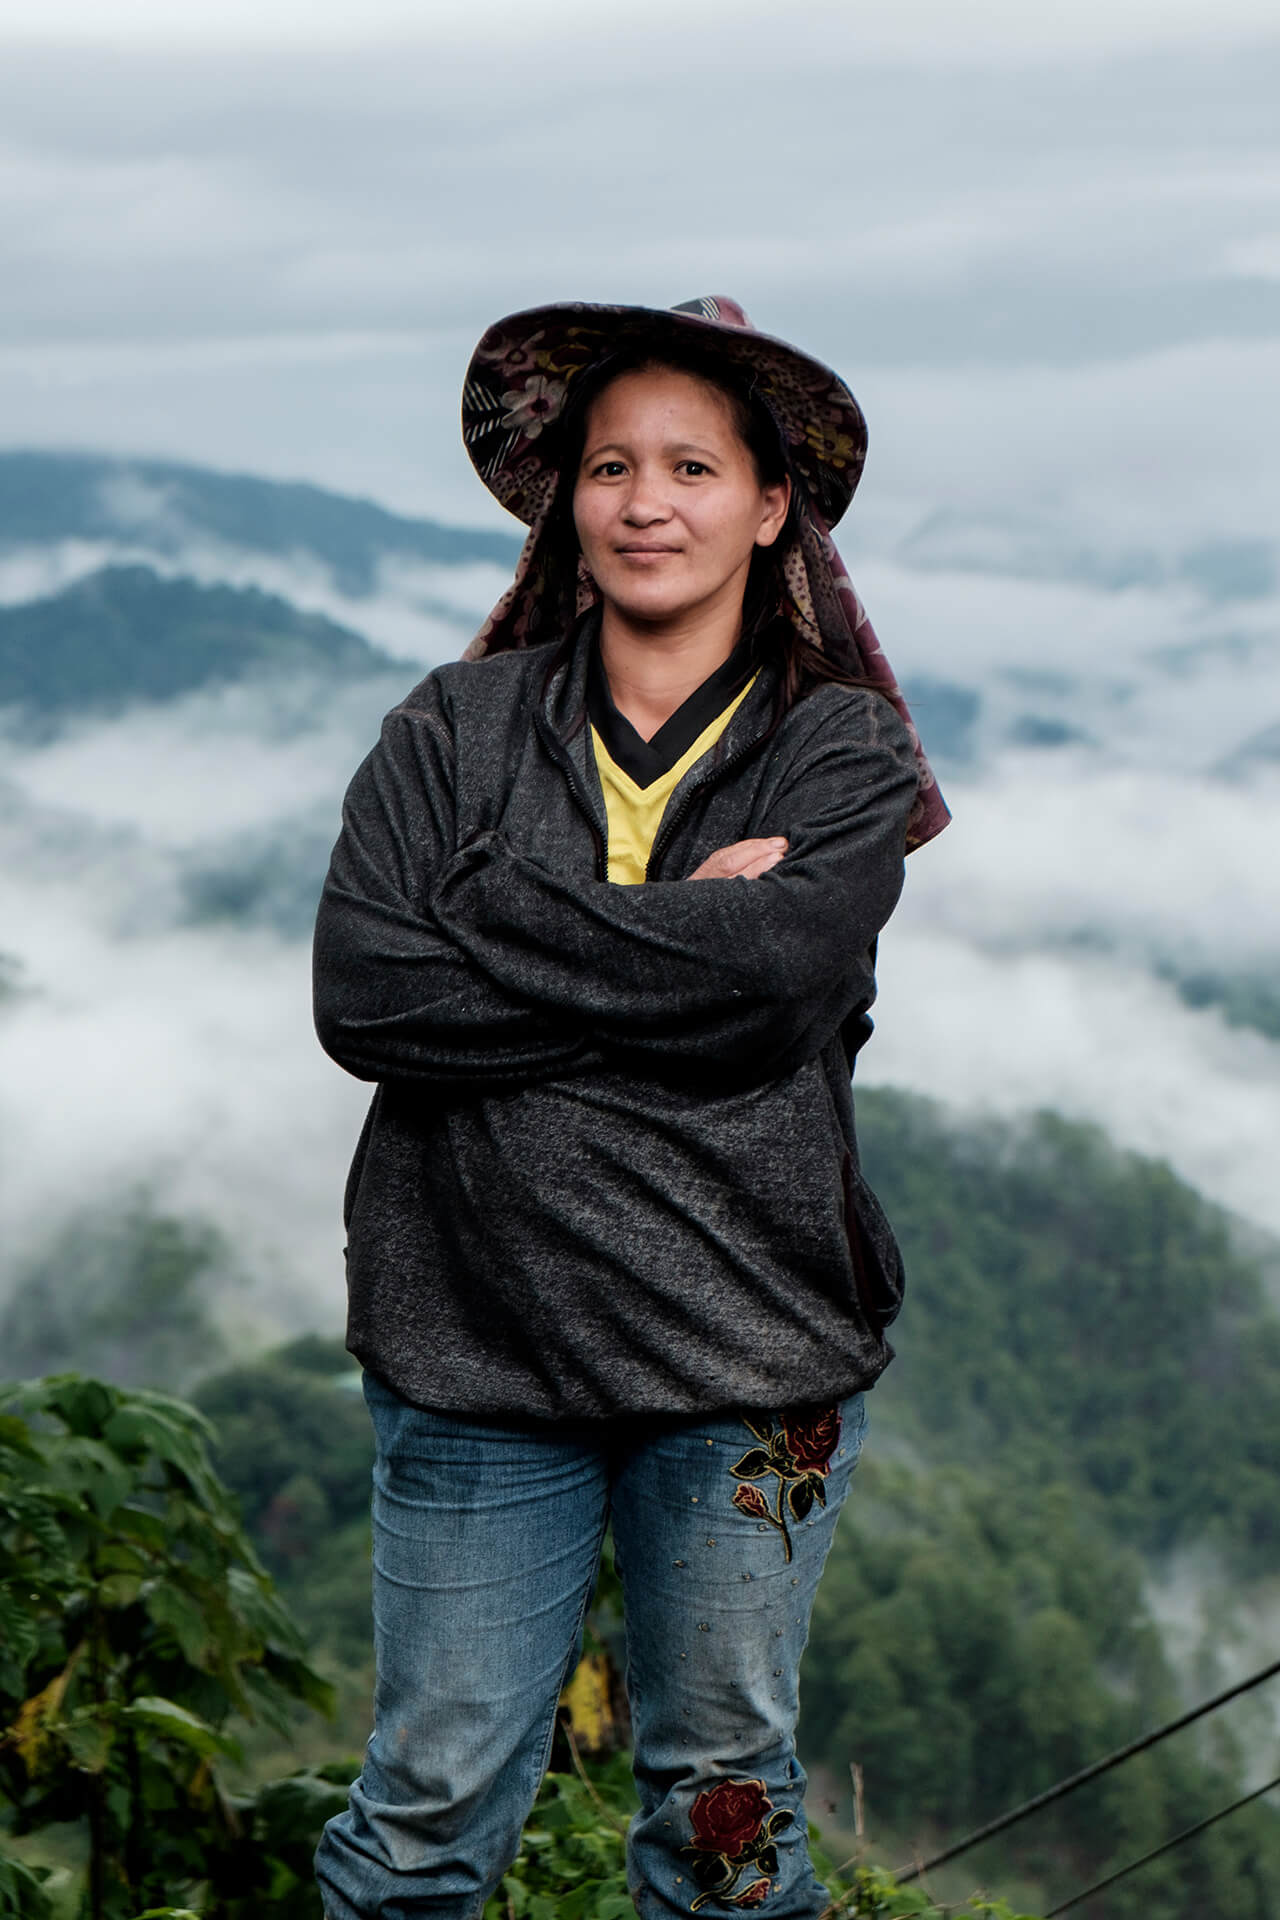 GENA. Third generation coffee farmer and strategic planner. She innovates and improves the way we harvest coffee.